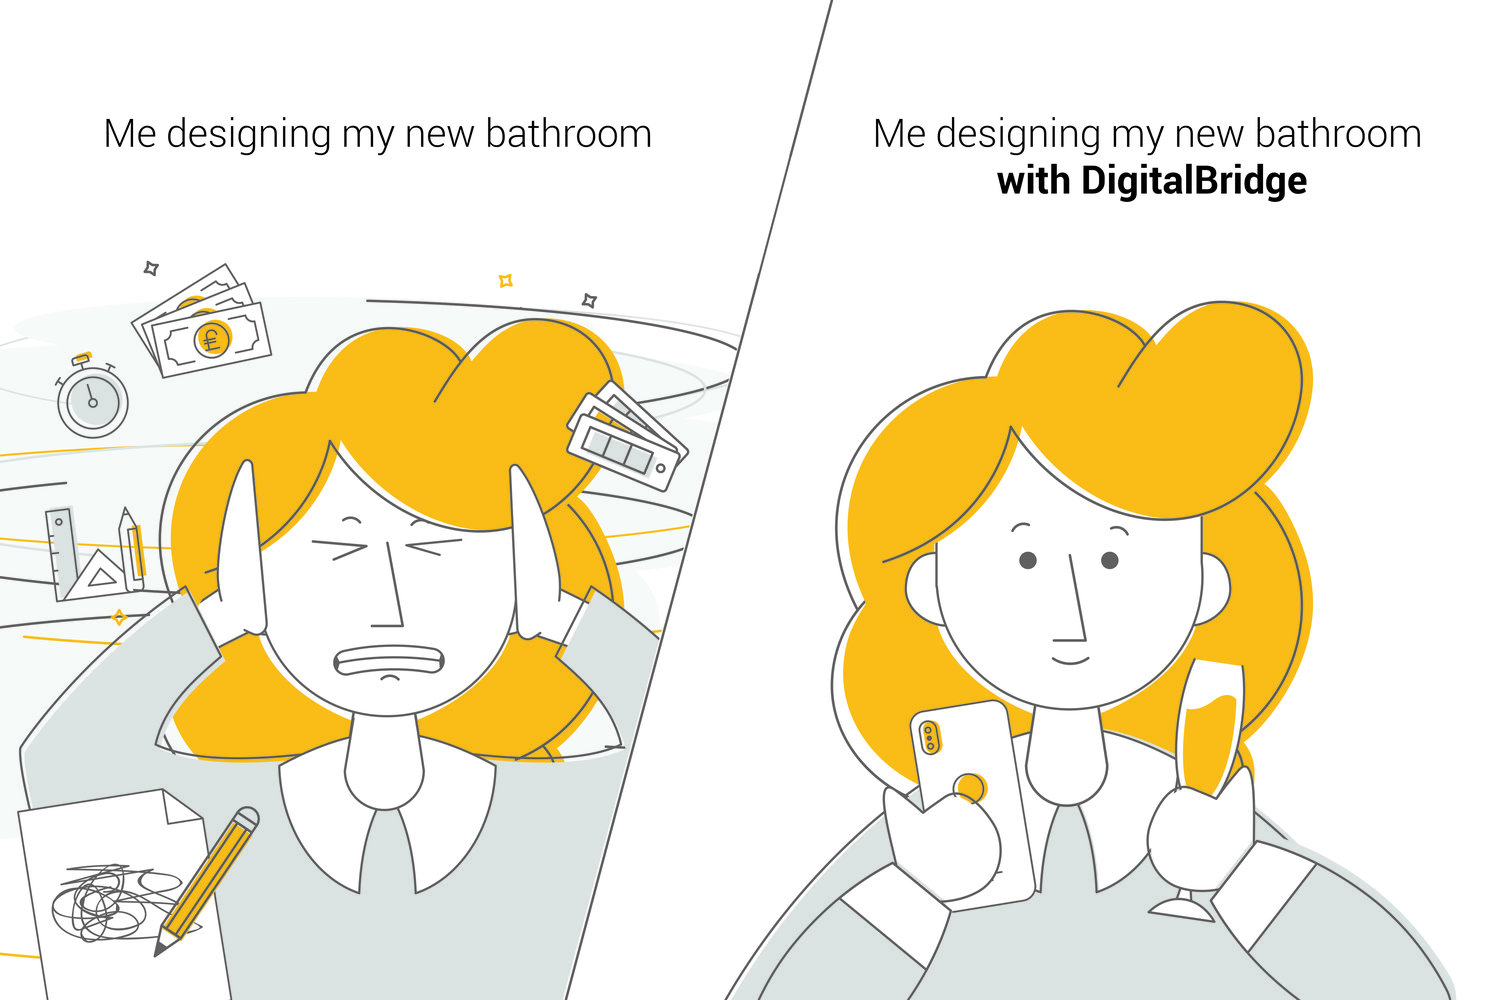 DigitalBridge reduces the friction and unknowns that occur during a kitchen or bathroom design process